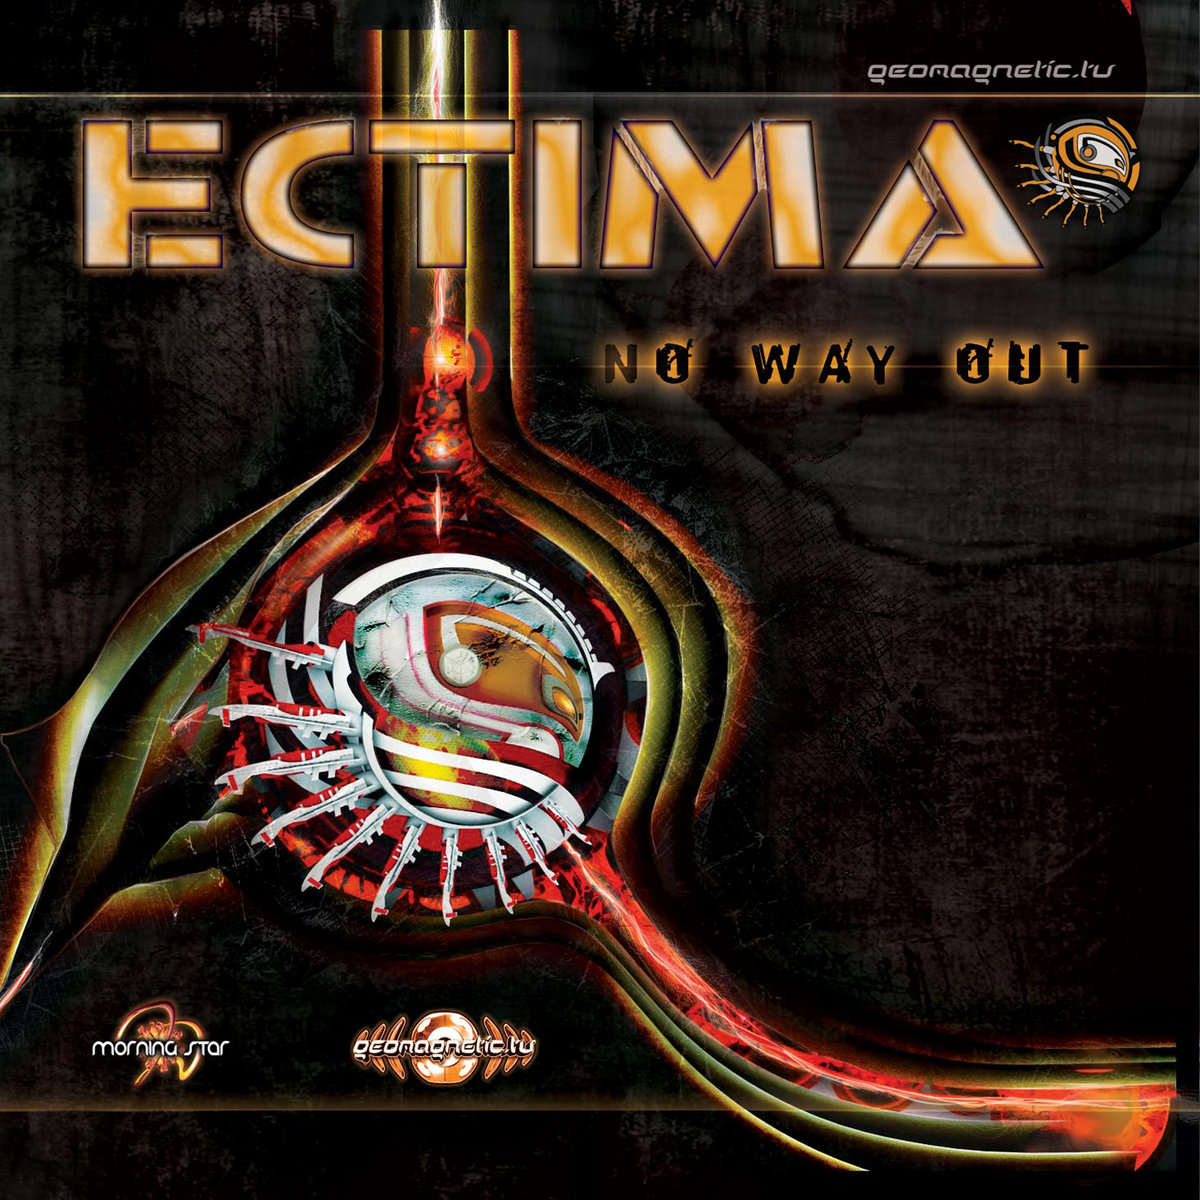 Ectima - Labyrinth @ 'No Way Out' album (electronic, goa)